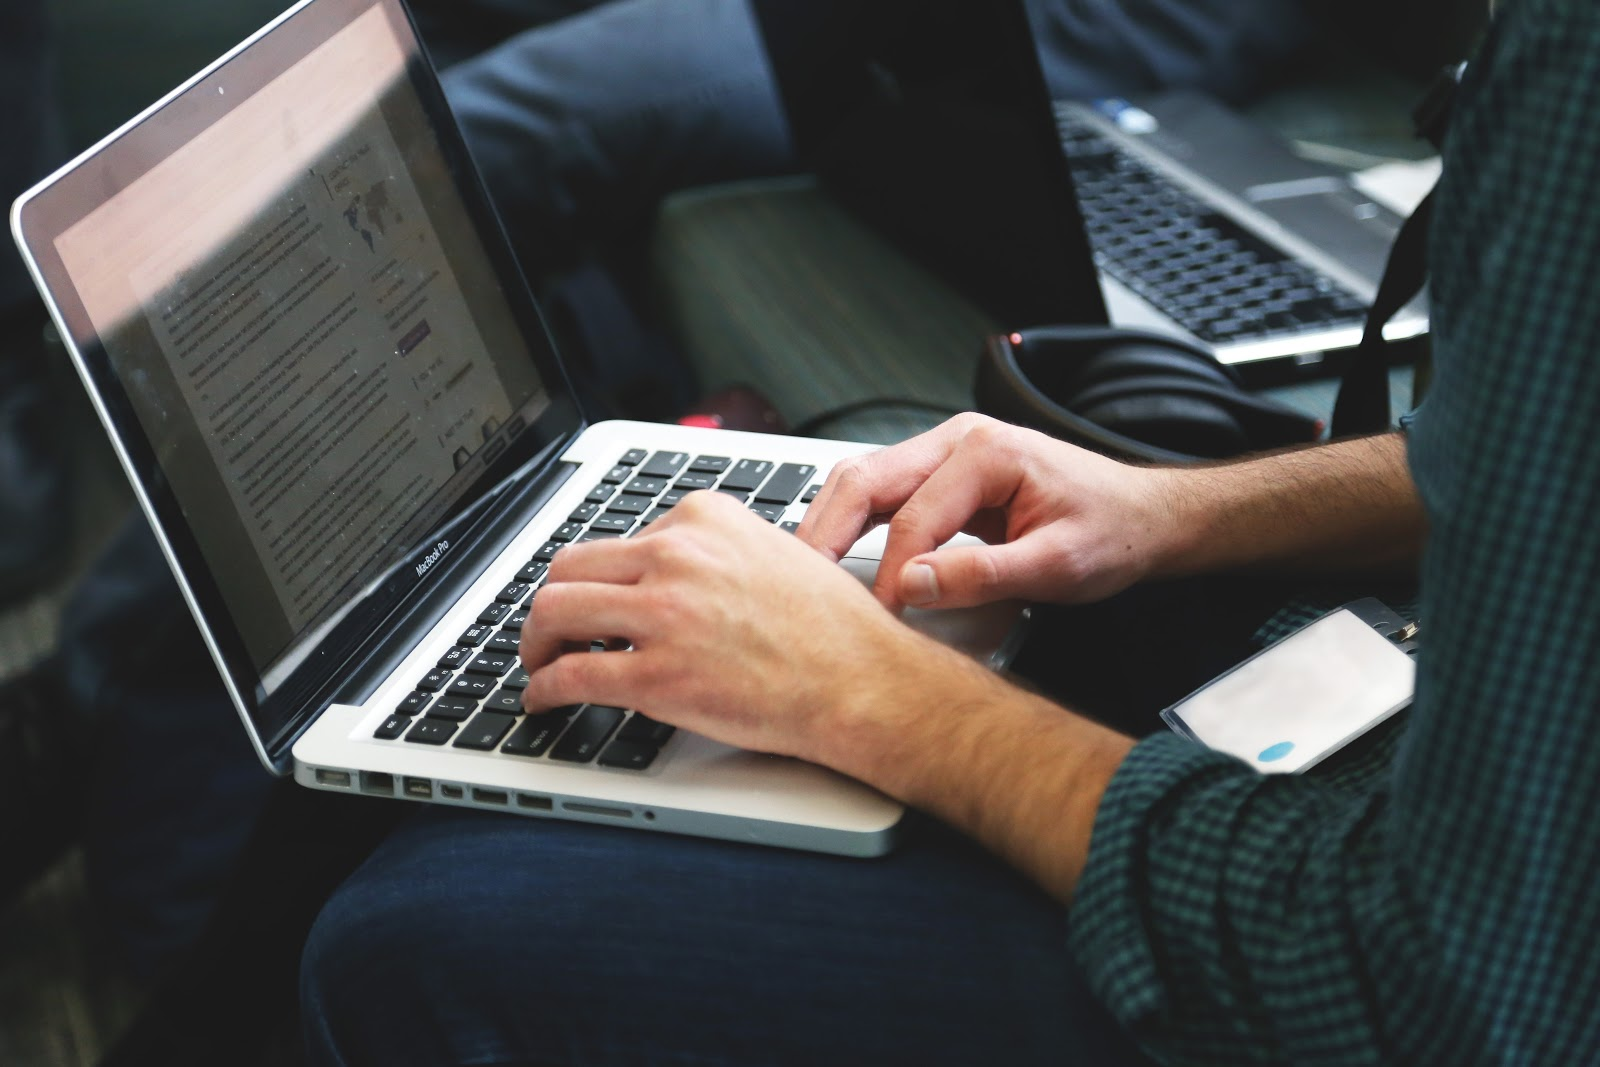 freelance writer at the computer